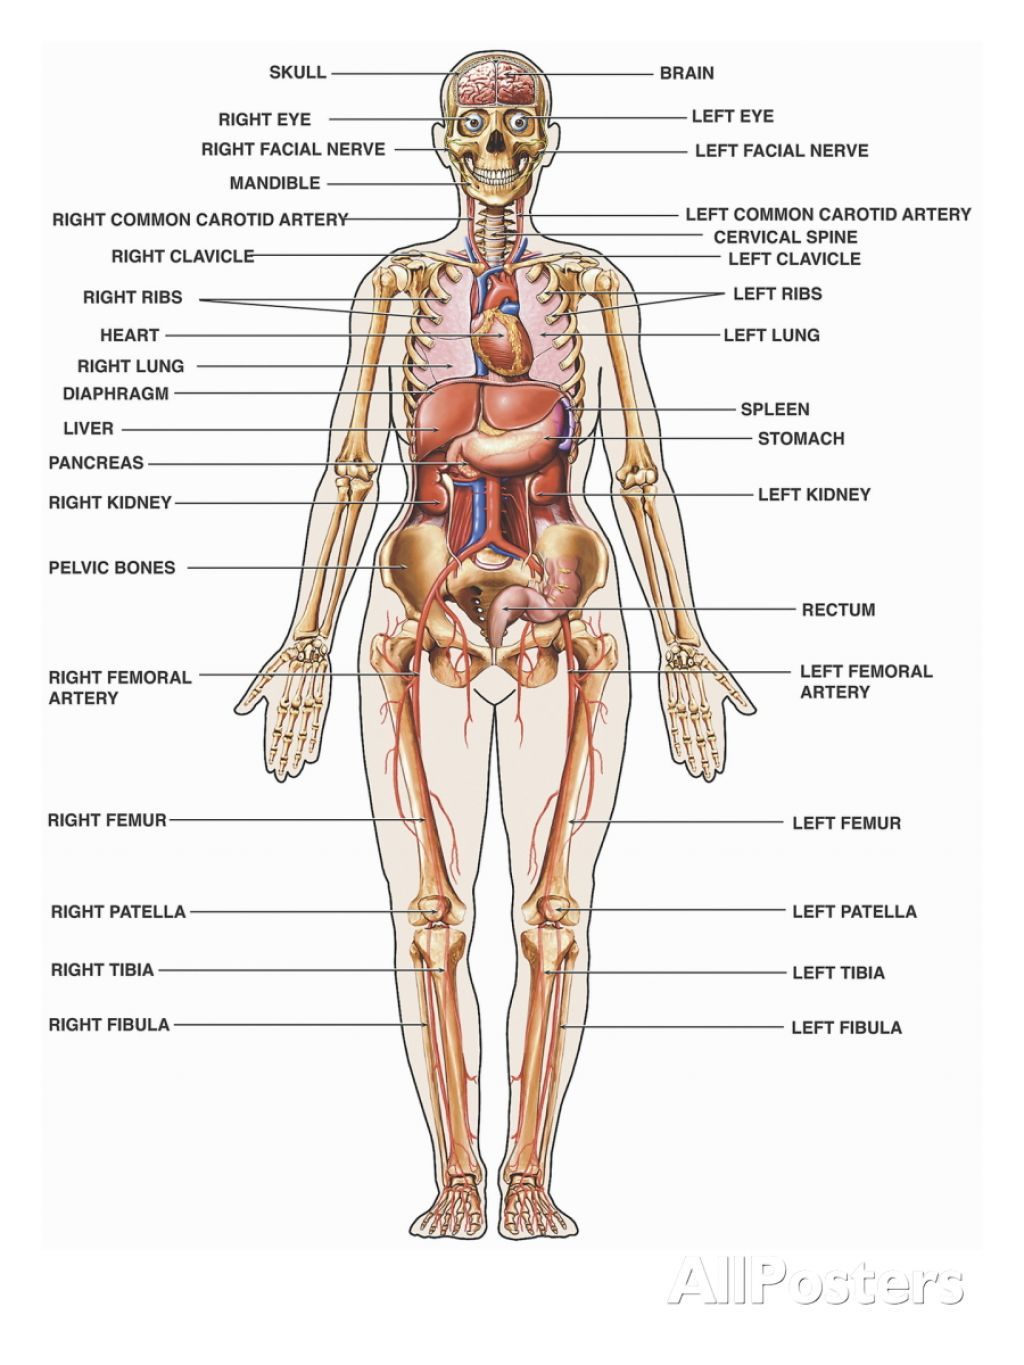 Anatomy Of The Human Body System Frak Pinterest